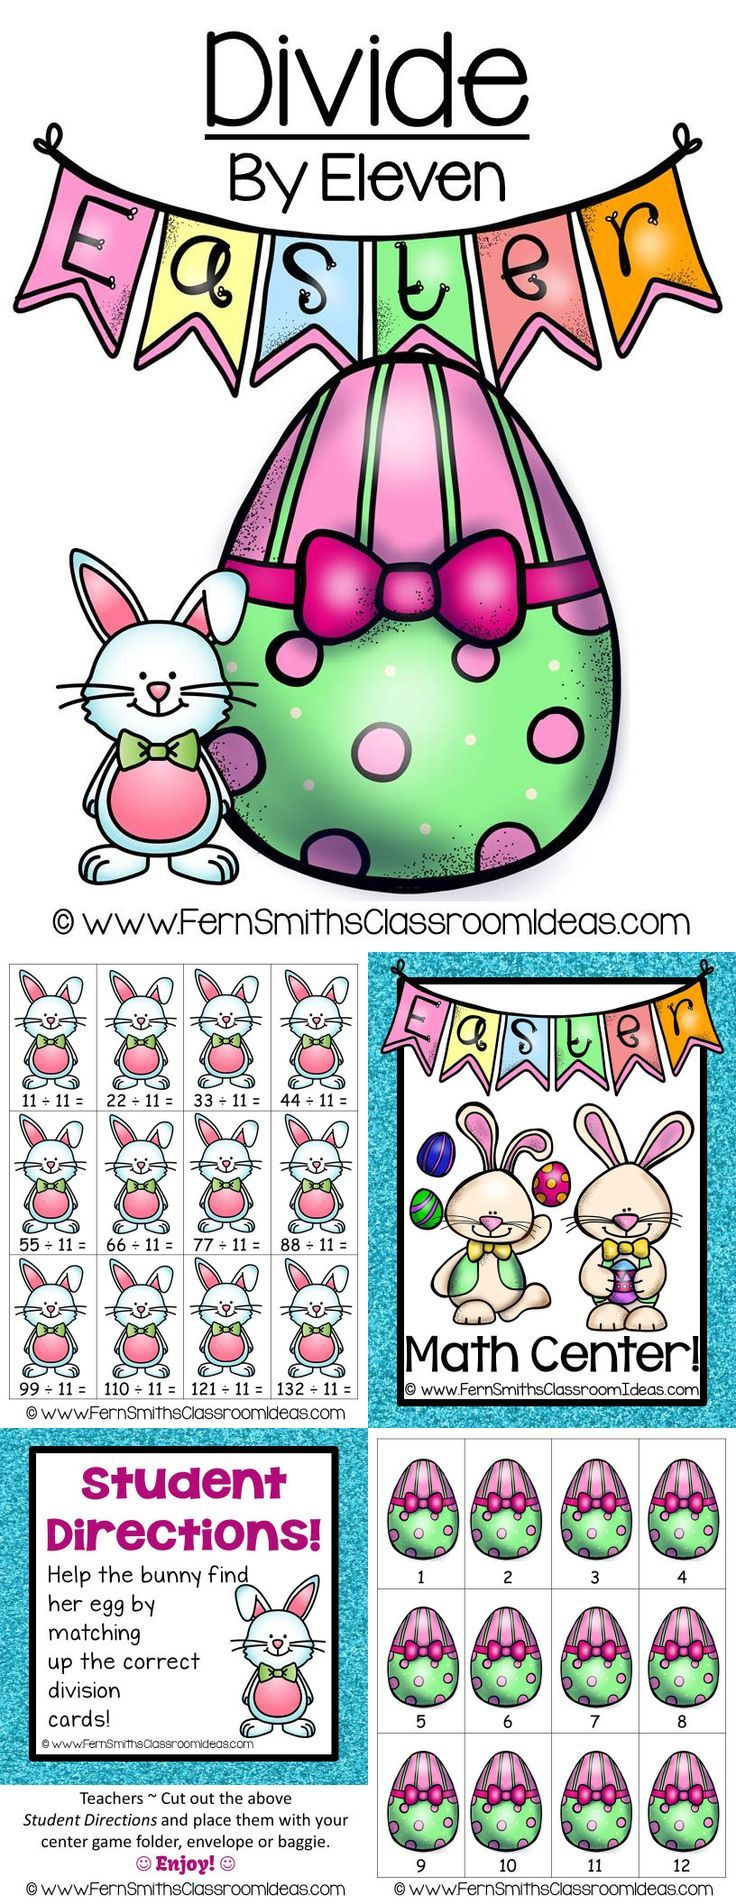 Quick and Easy to Make Division Center Game Divide By Eleven Concept for Easter #TPT $Paid